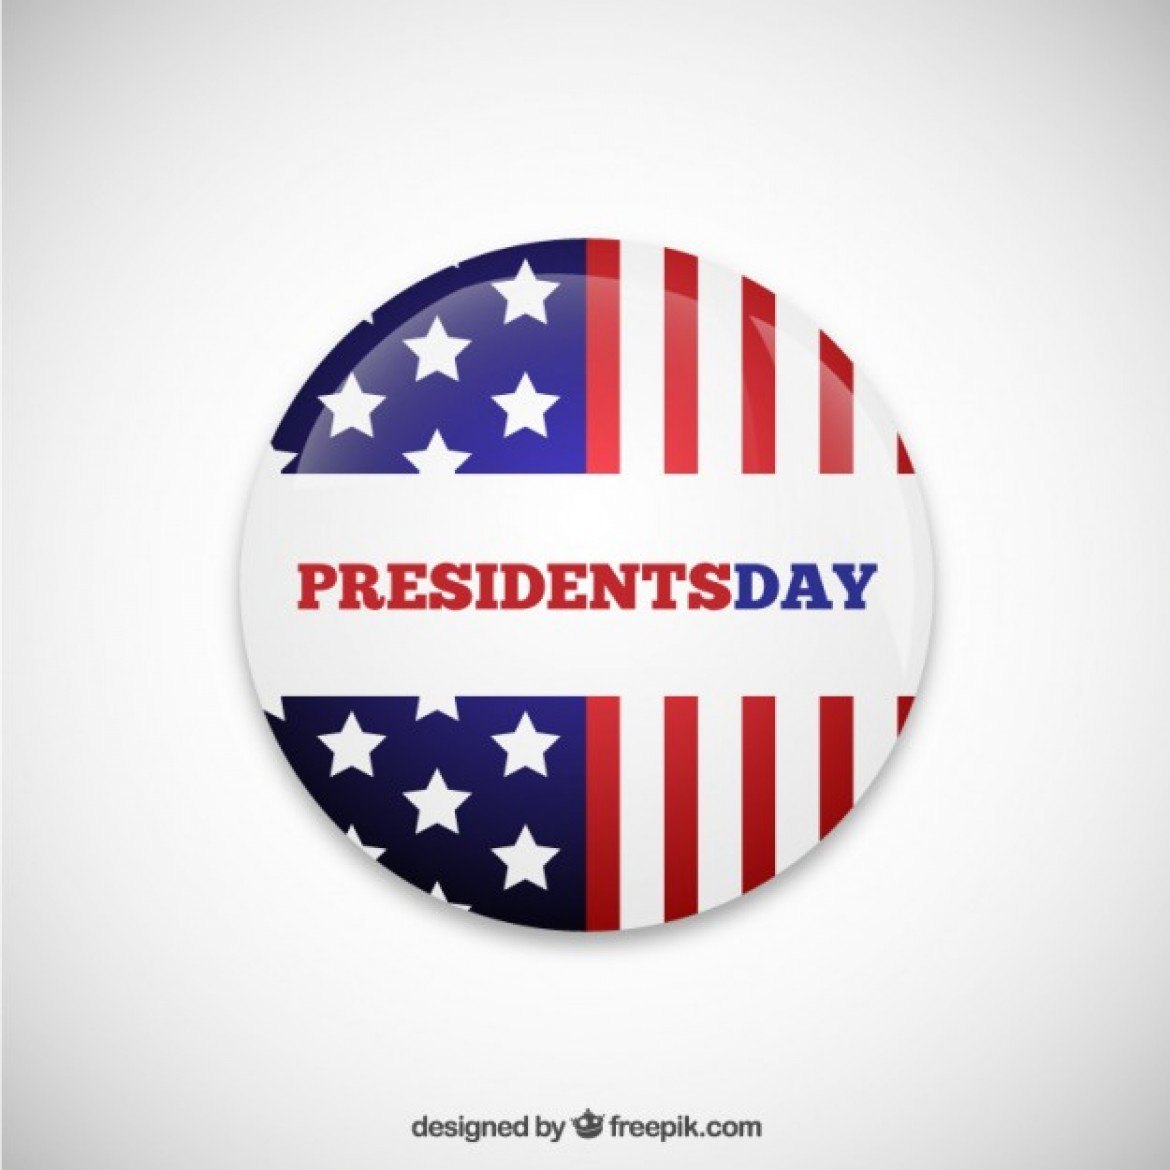 2 President's Day Images